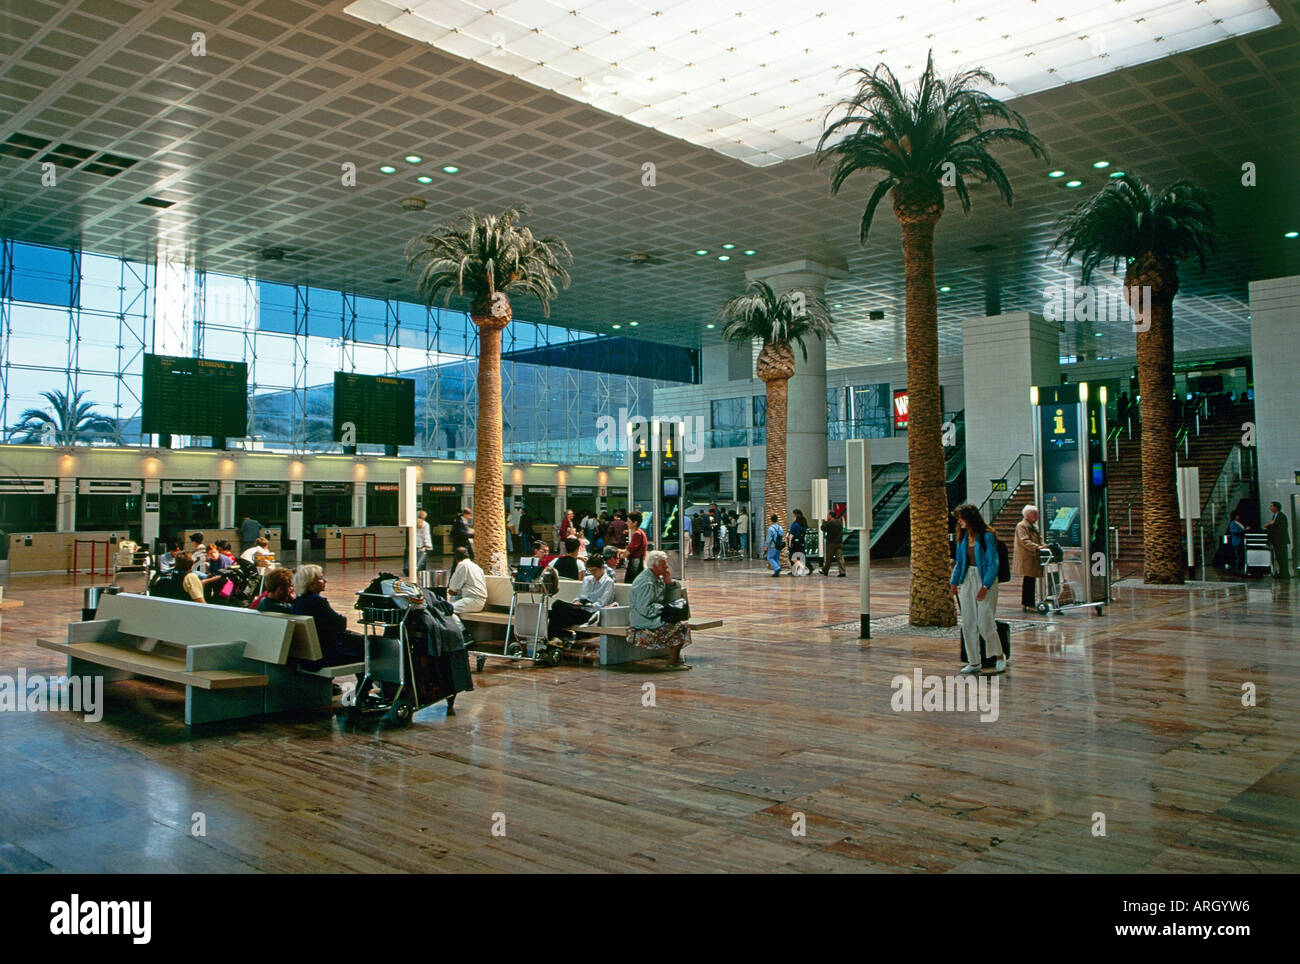 A number of passengers sitting in the departure lounge of Barcelona s international airport El Prat de Llobregat decorated with towering indoor palms which rise up from the polished wood effect floor - Stock Image